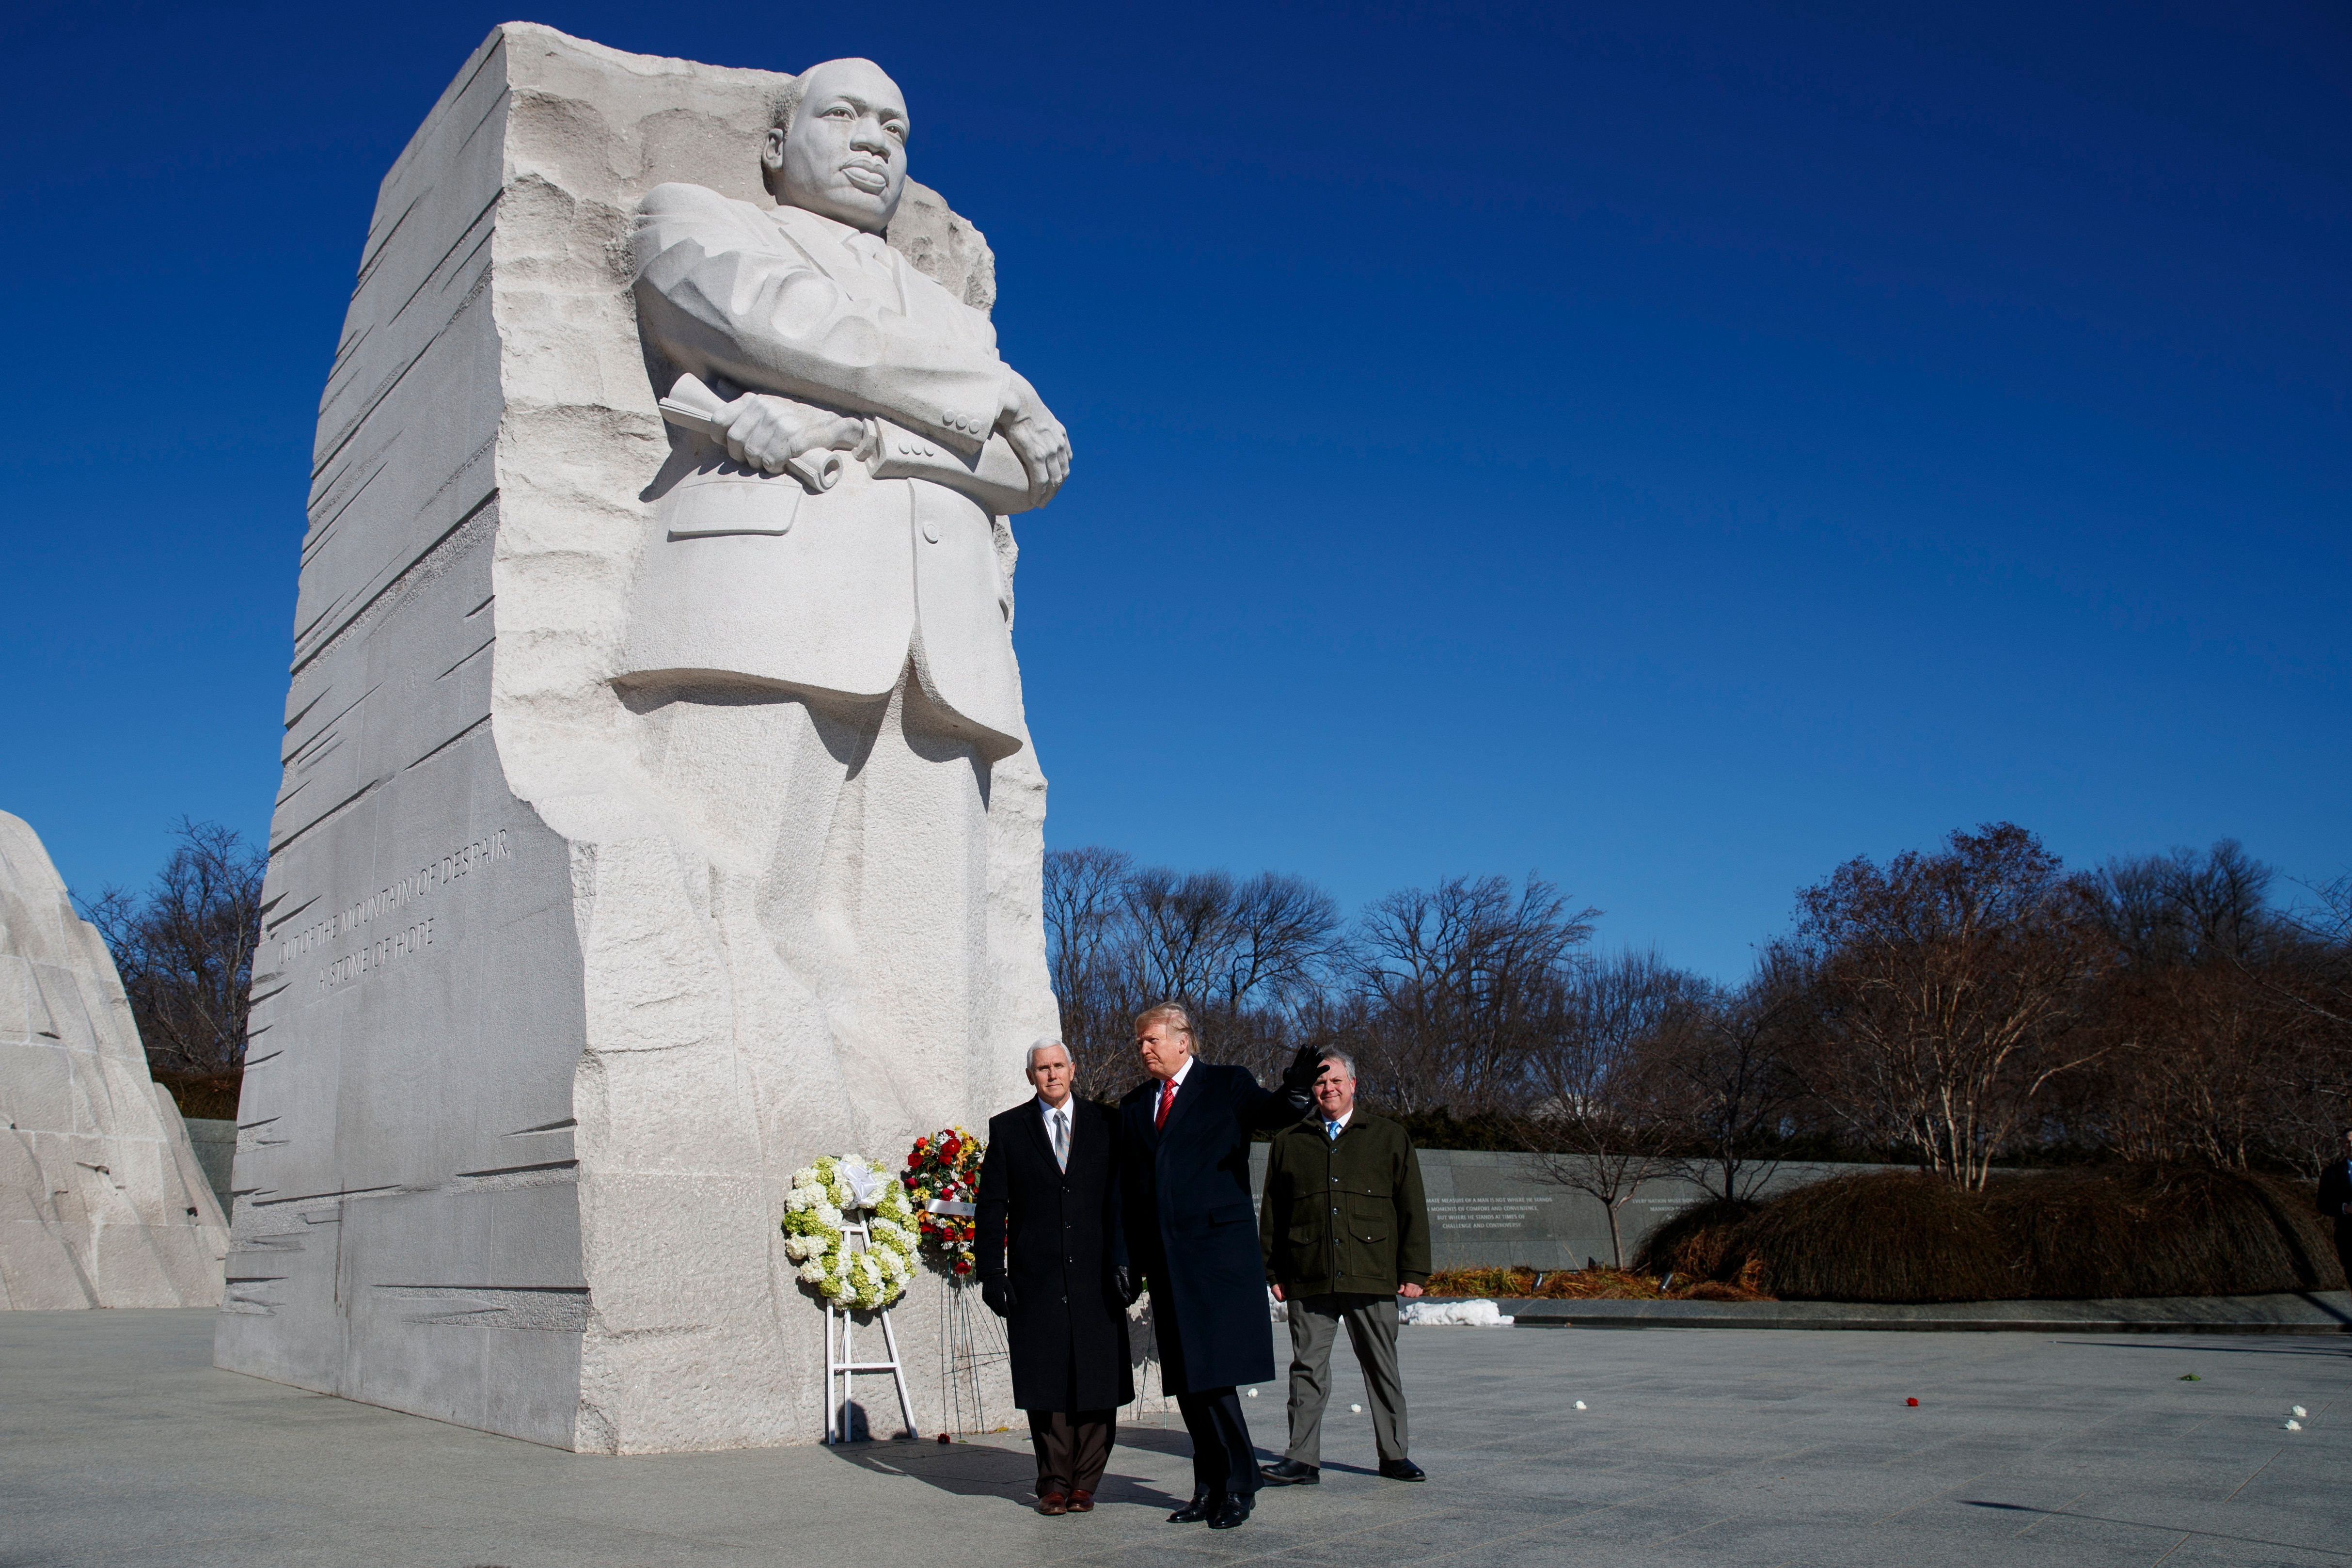 Trump Makes Surprise Visit To MLK Memorial Leaves After About 2 Minutes